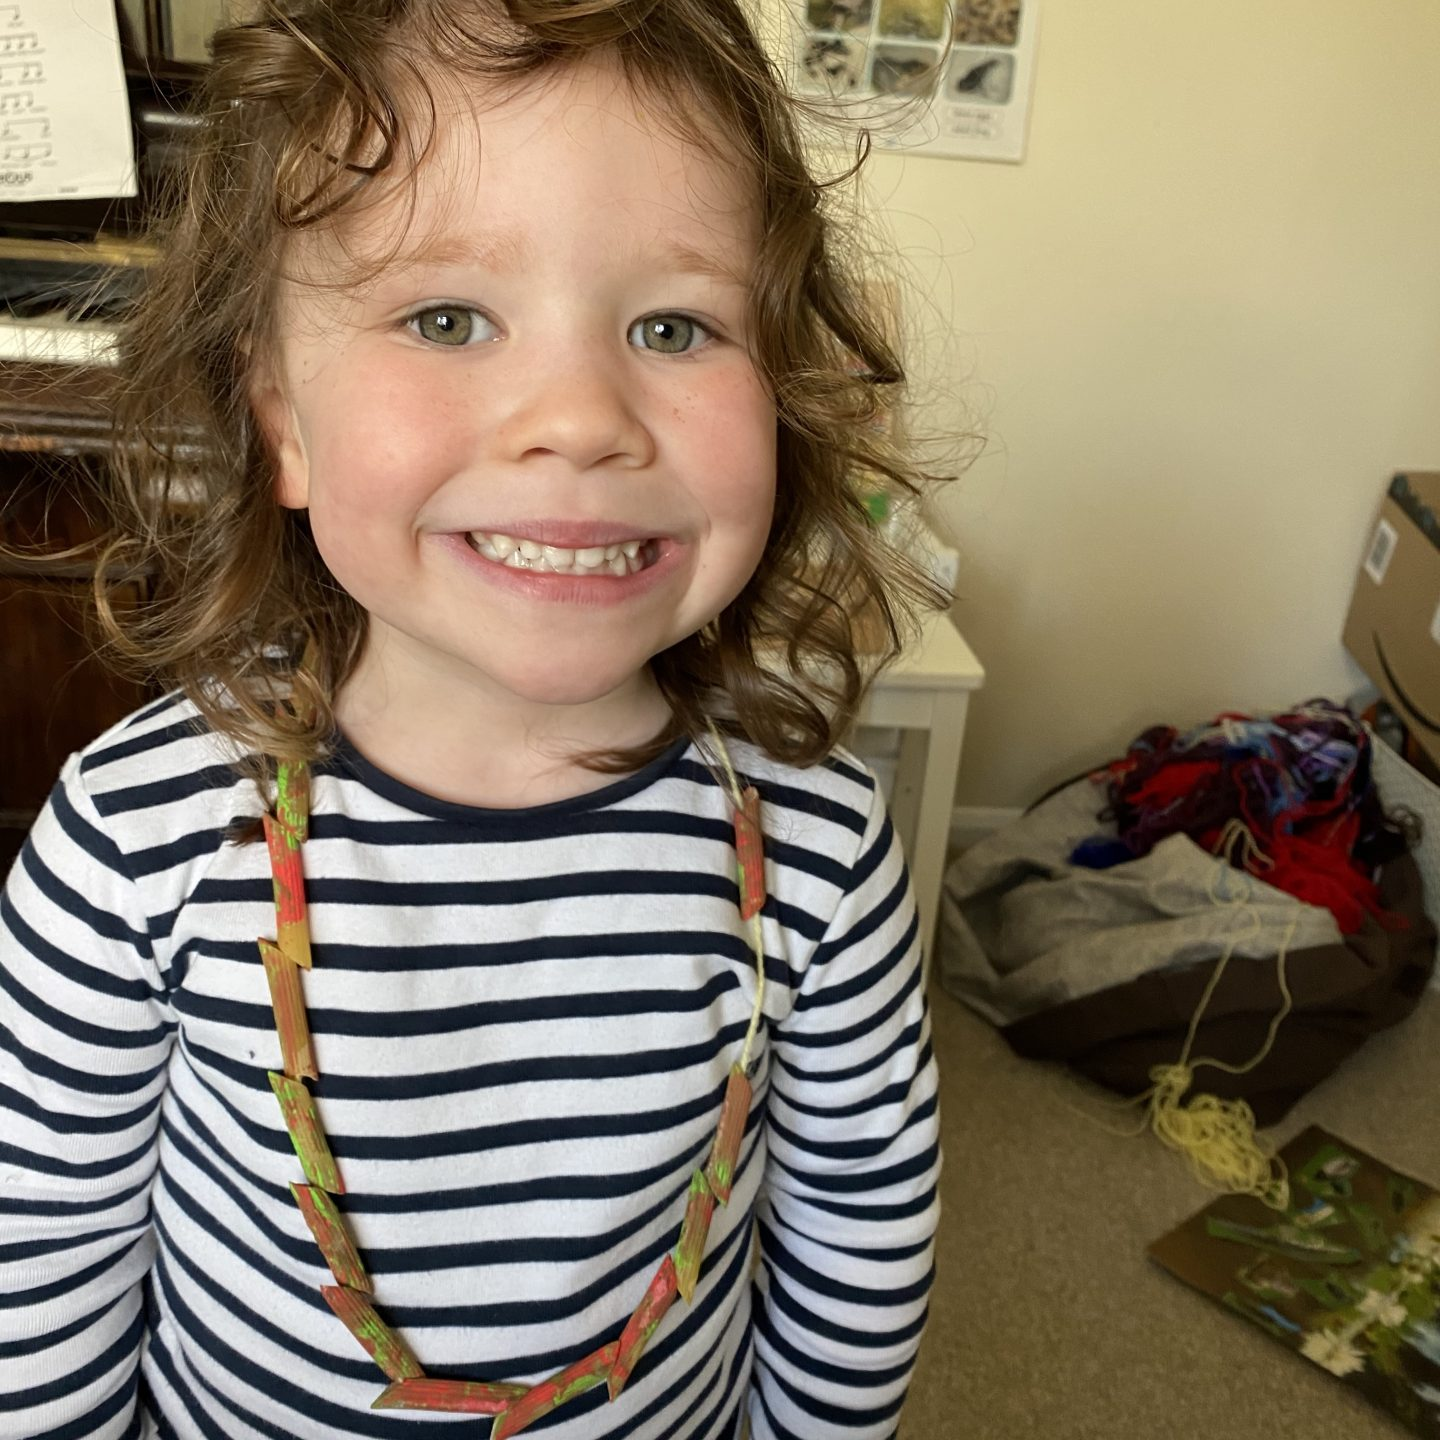 A girl showing off her homeschool creations of a pasta necklace